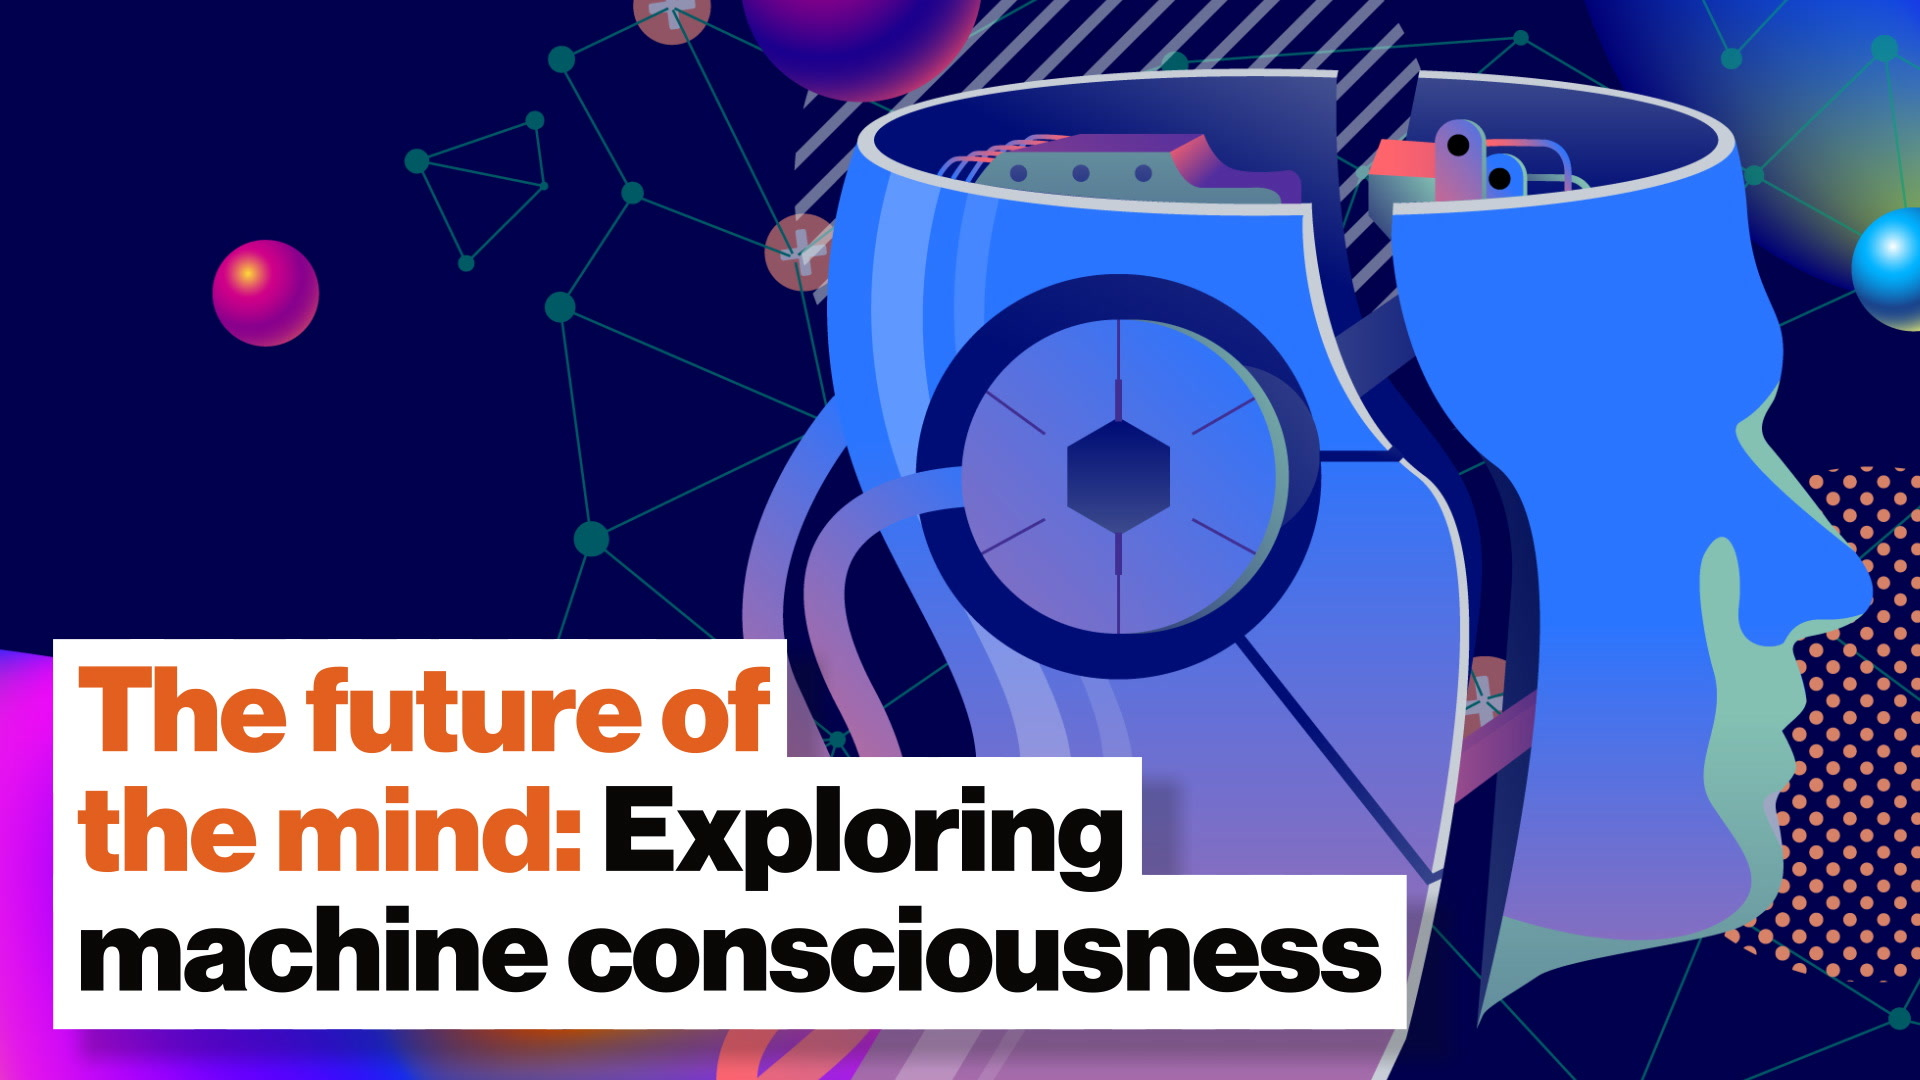 The future of the mind: Exploring machine consciousness